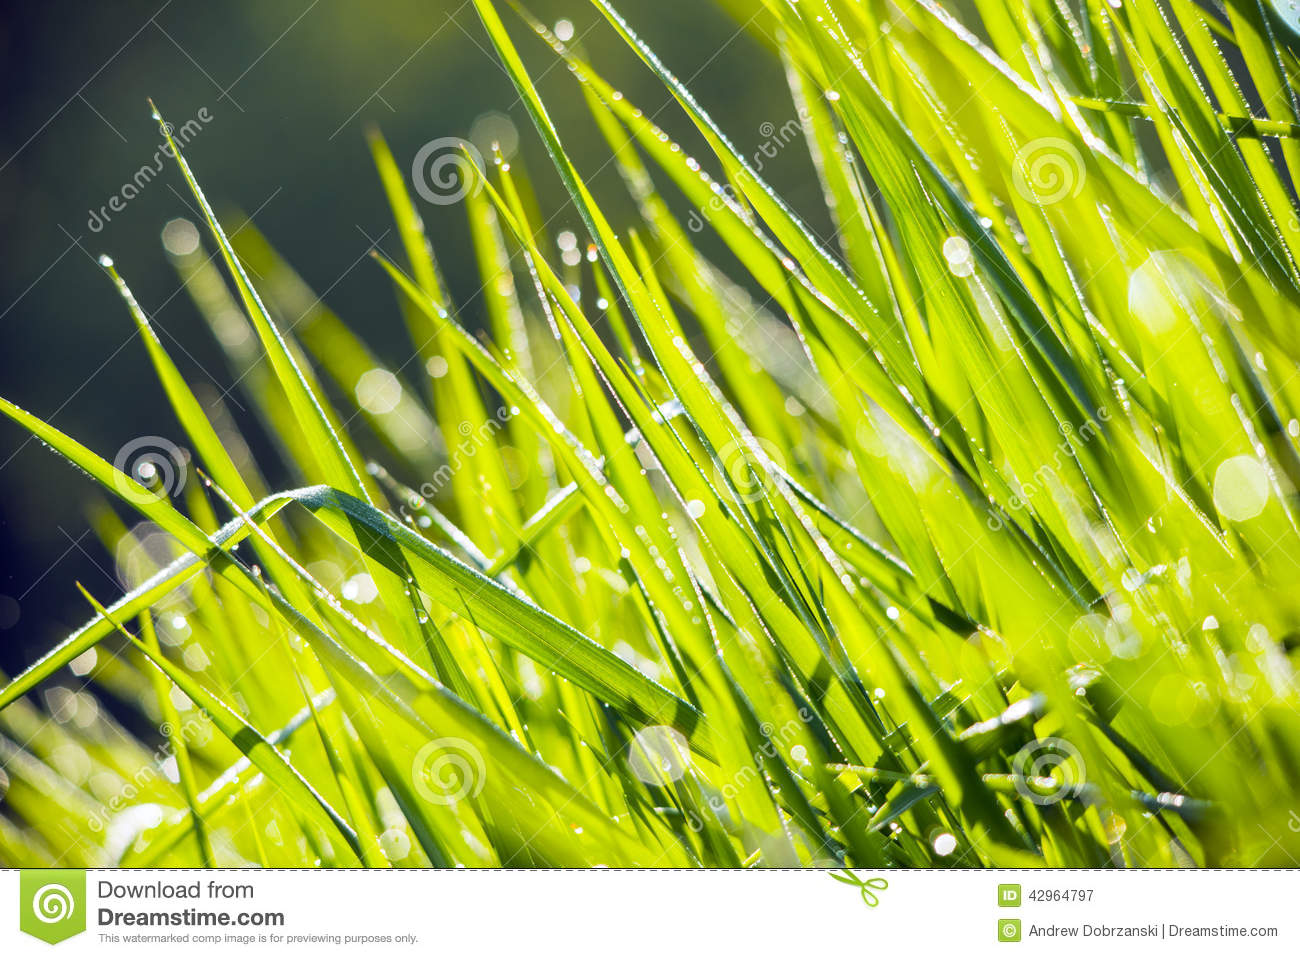 Mist And The Morning Dew, The - The Mist And The Morning Dew